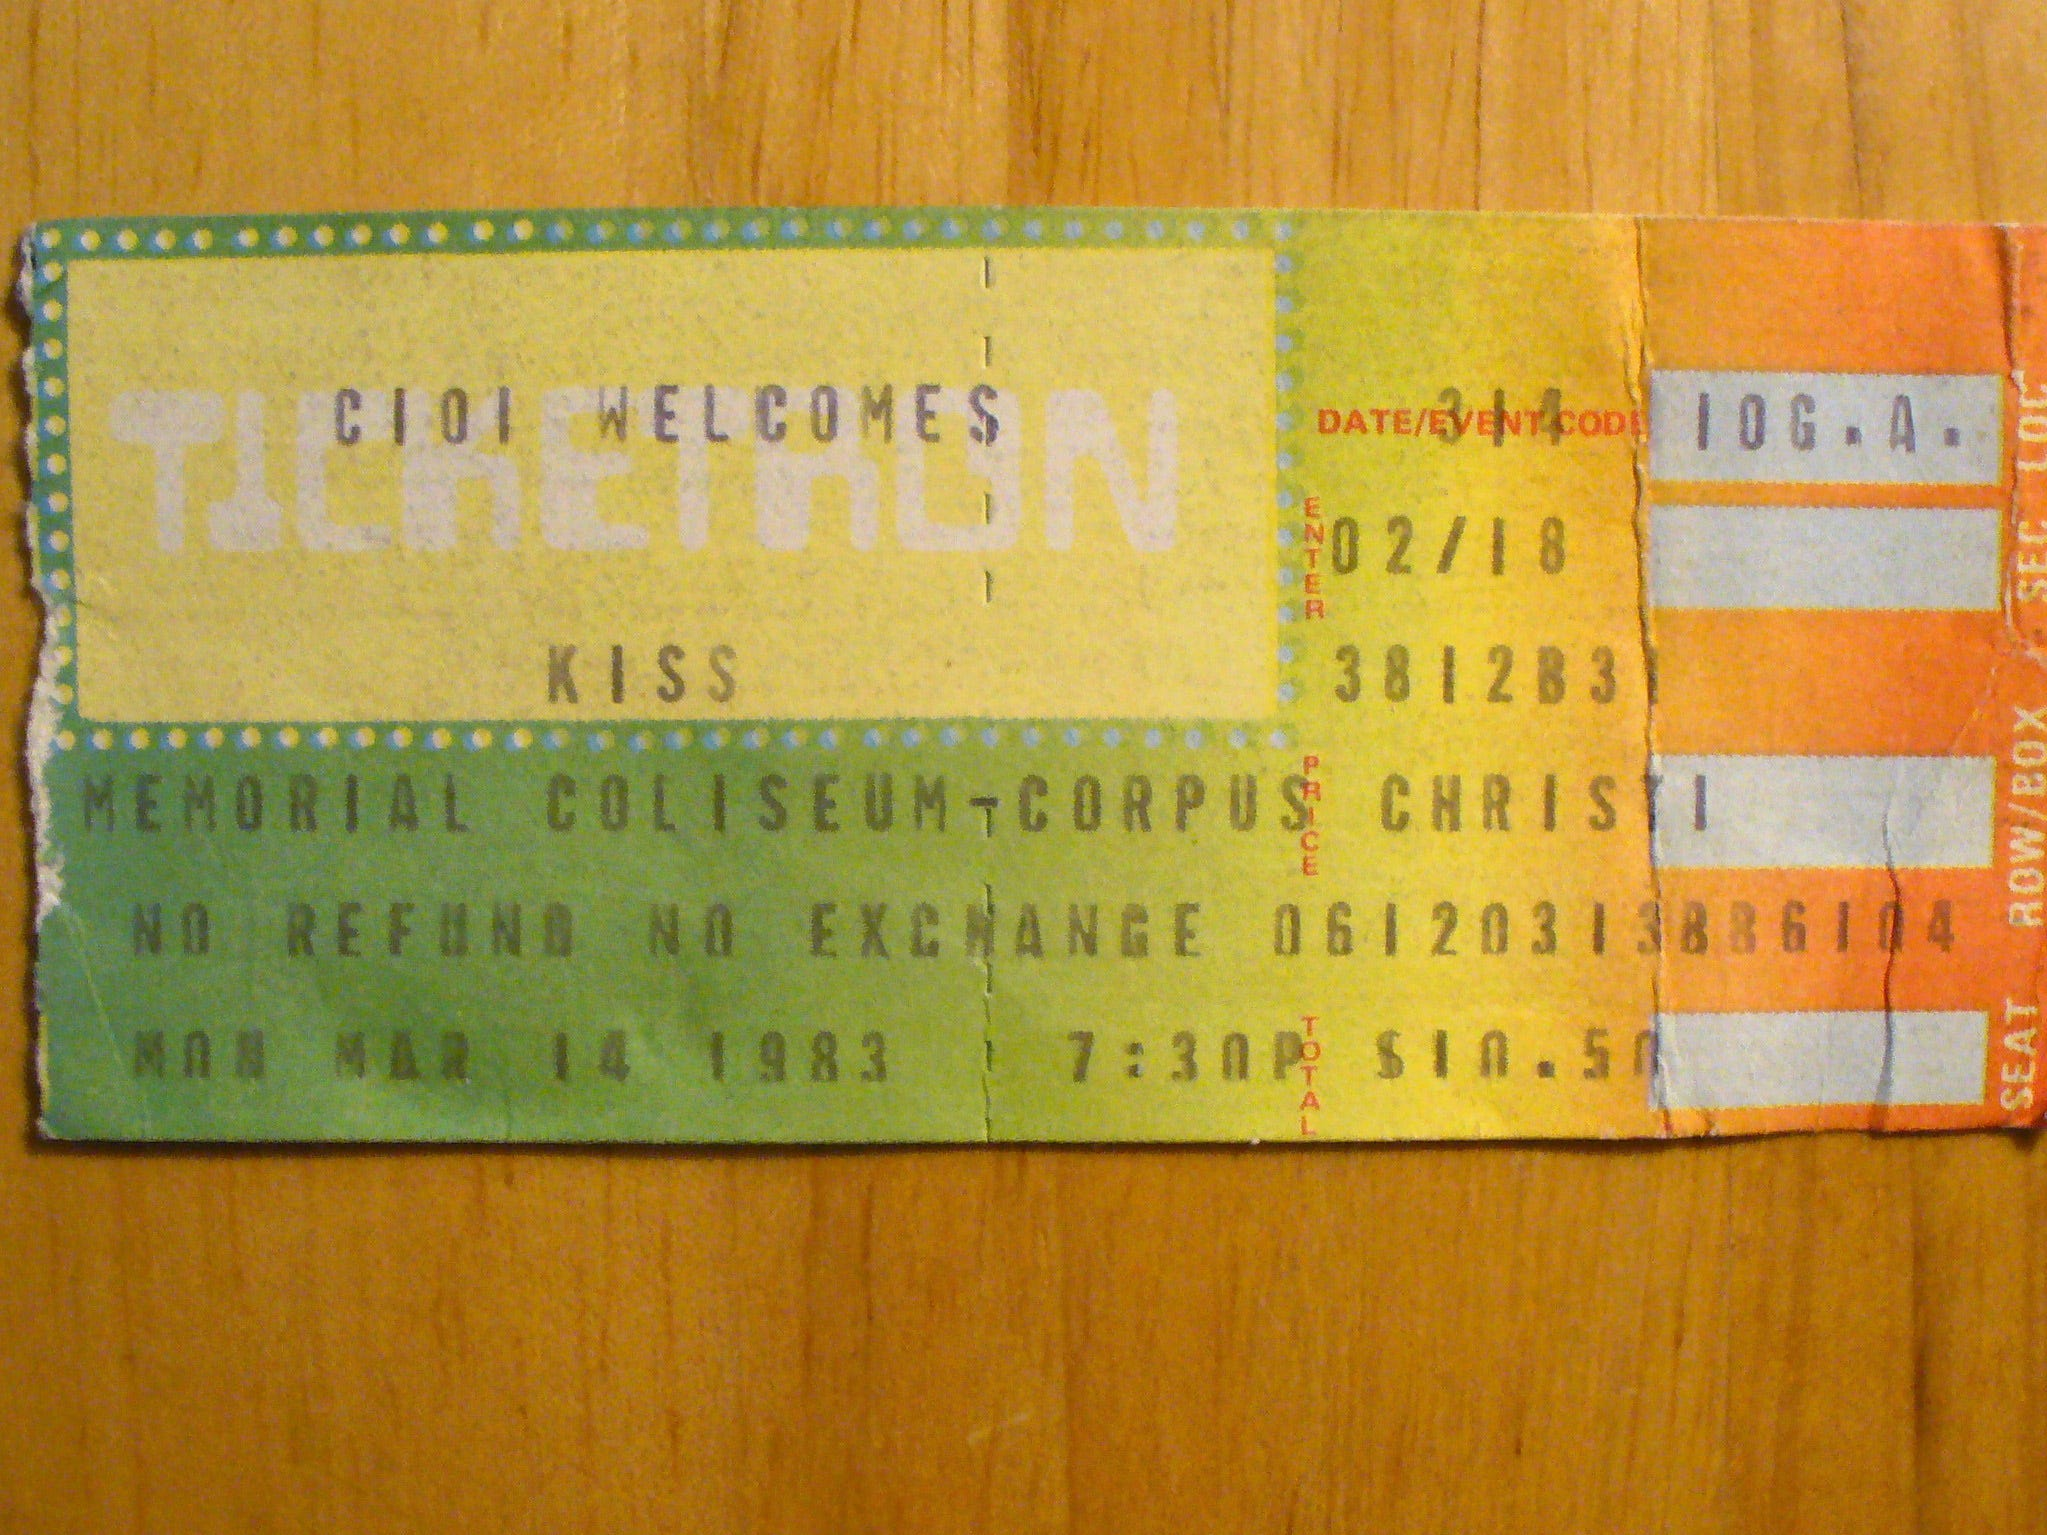 Jaime Zamora shared copies of tickets from the many concerts he attended at Memorial Coliseum with the Caller-Times in 2010. This ticket was for the March 14, 1983 KISS concert